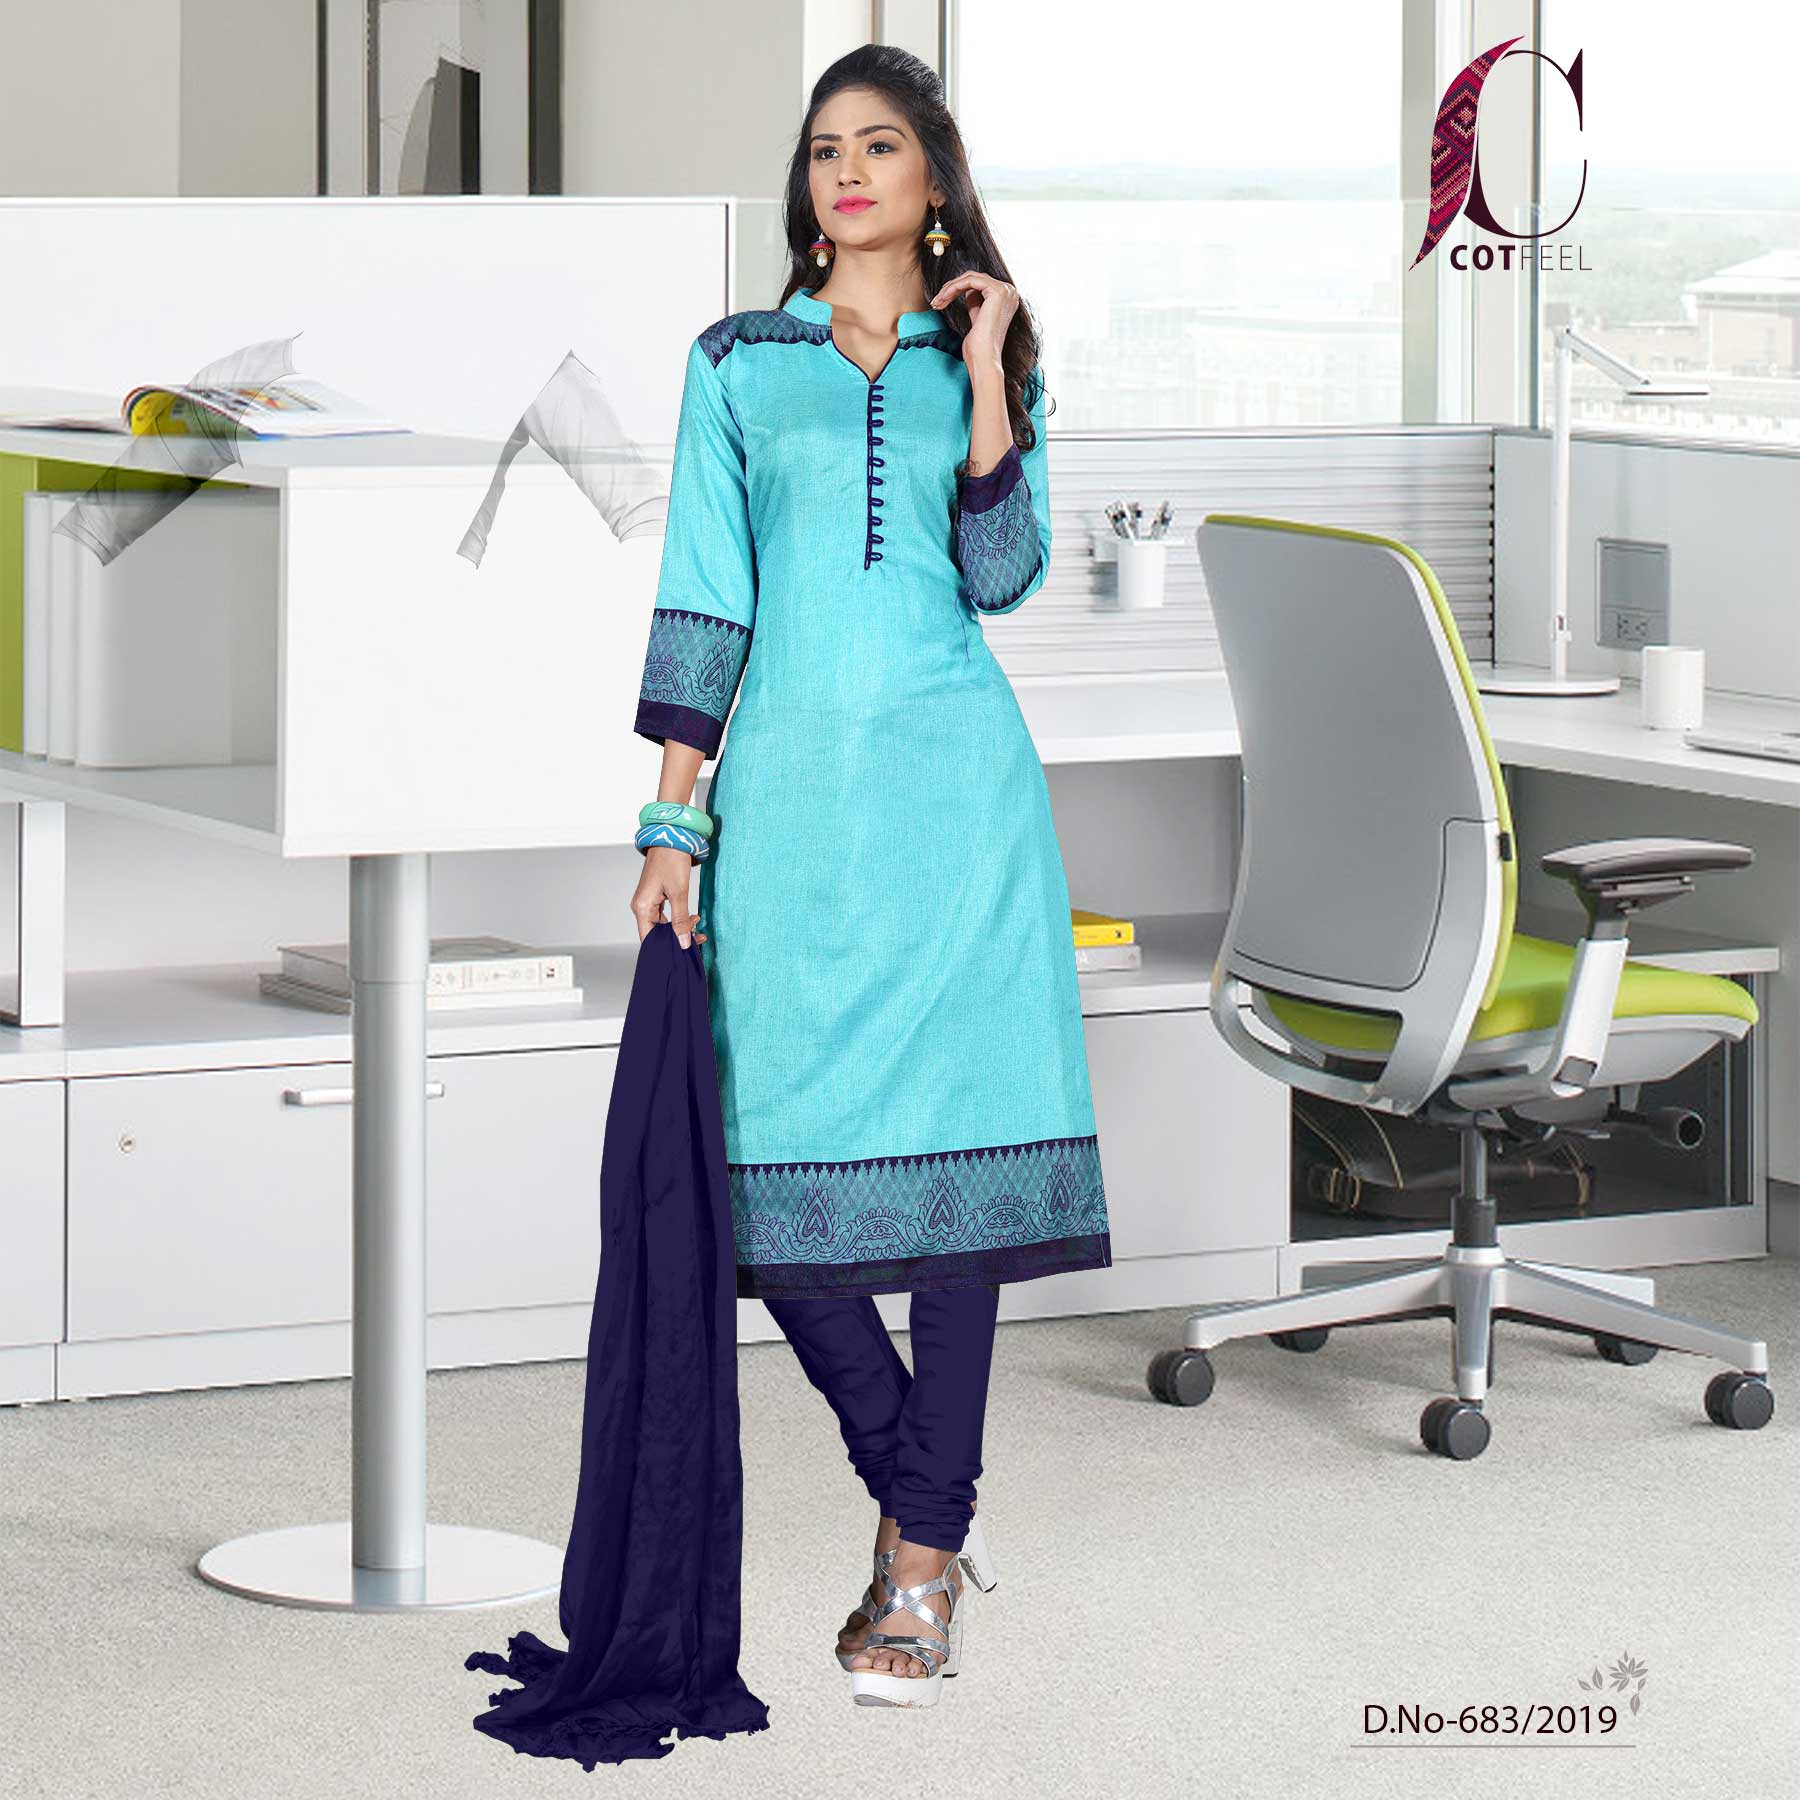 an image Turquoise with navy blue border tripura cotton teacher uniform salwar kameez with product logo and sku number